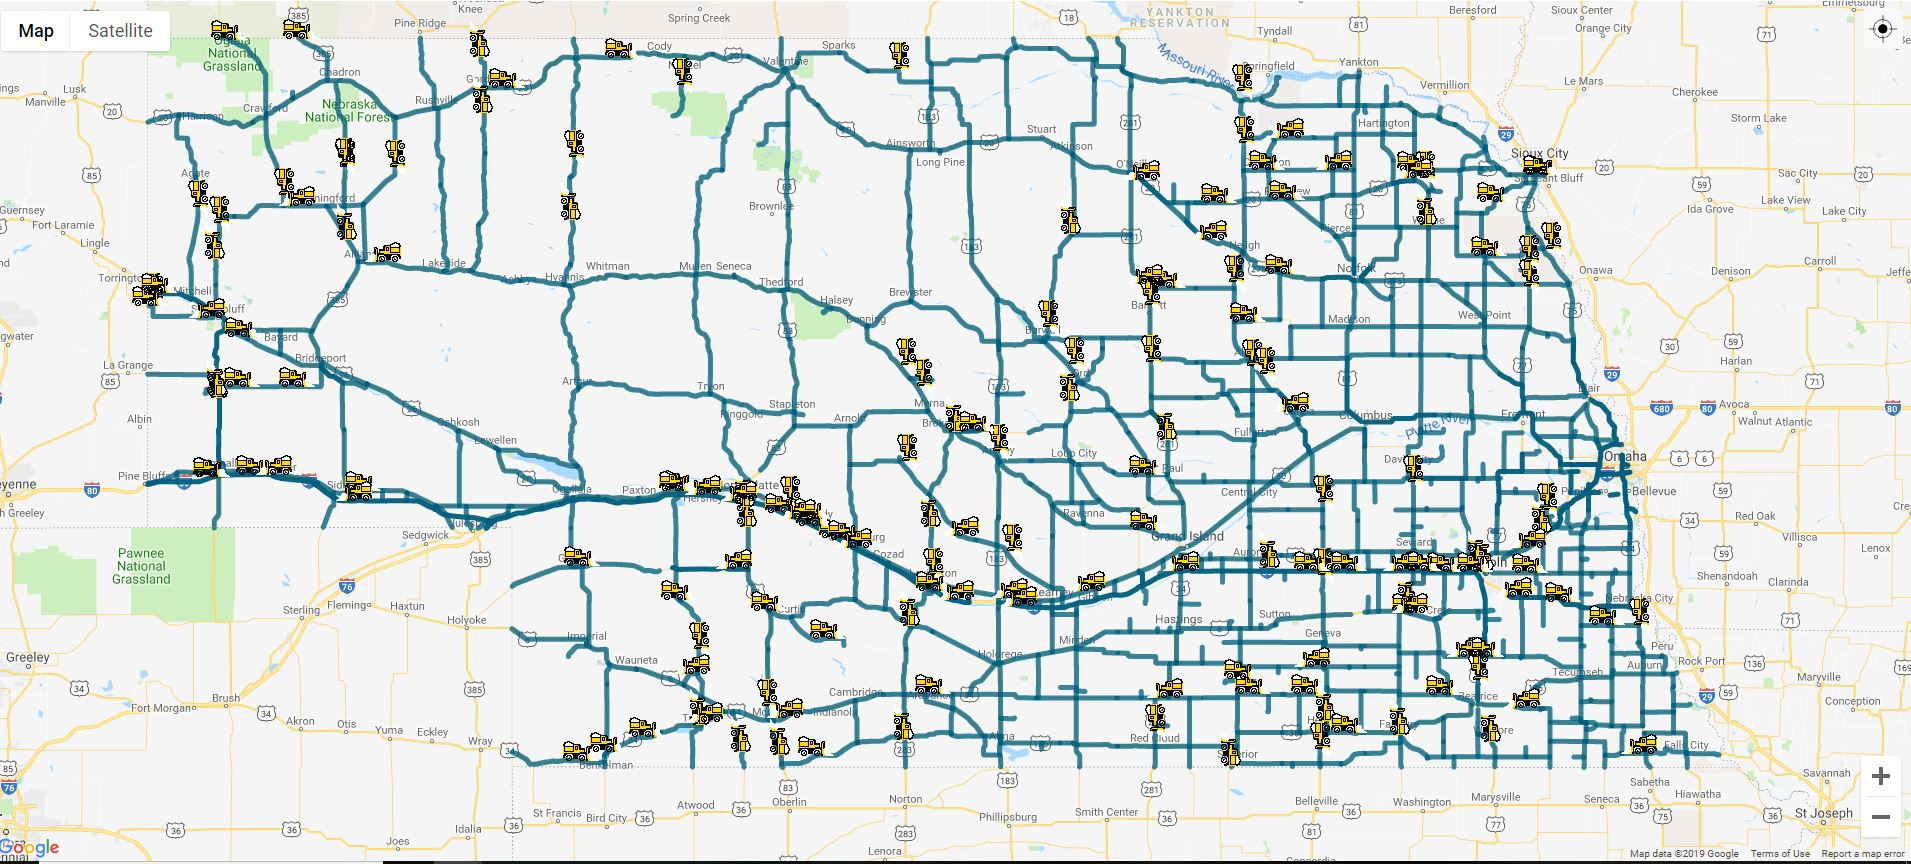 plow tracker map_1548180941878.JPG.jpg